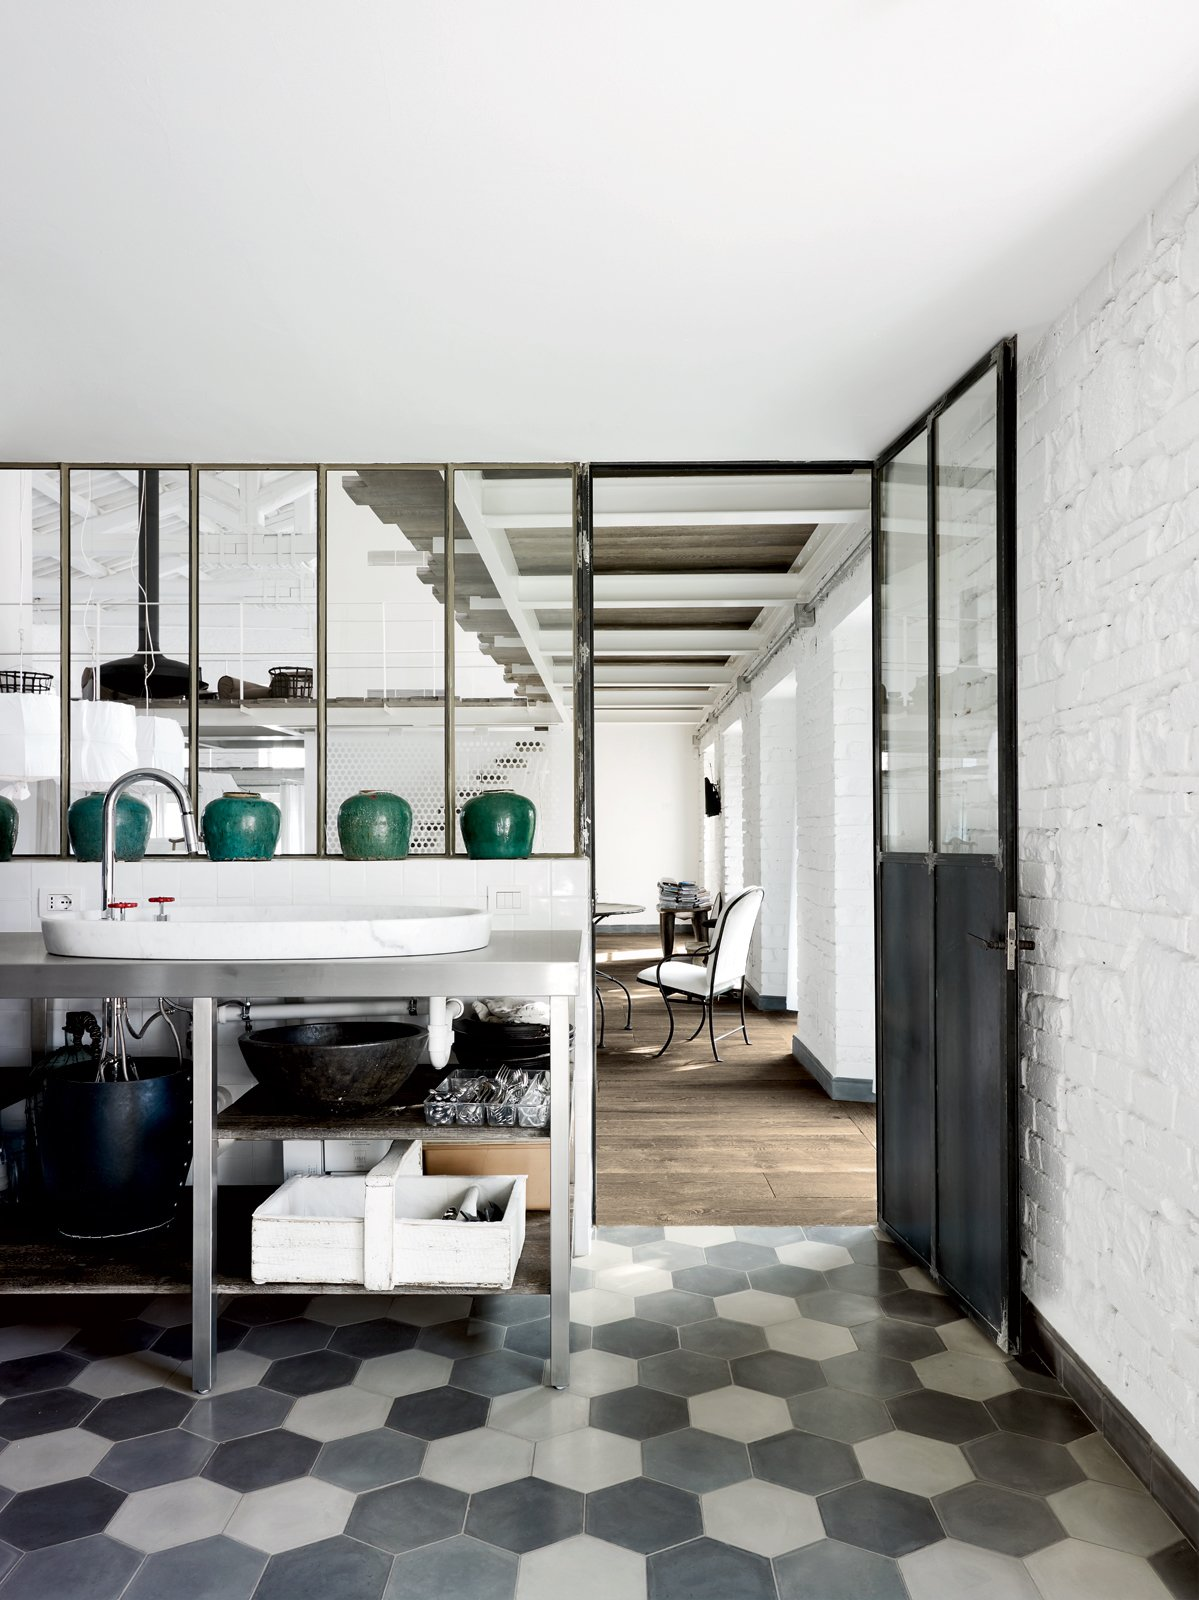 For the floors in the kitchen and throughout, Navone placed hexagonal Carocim tiles of her own design.  Photo 3 of 11 in Paola Navone's Industrial Style Renovation in Italy